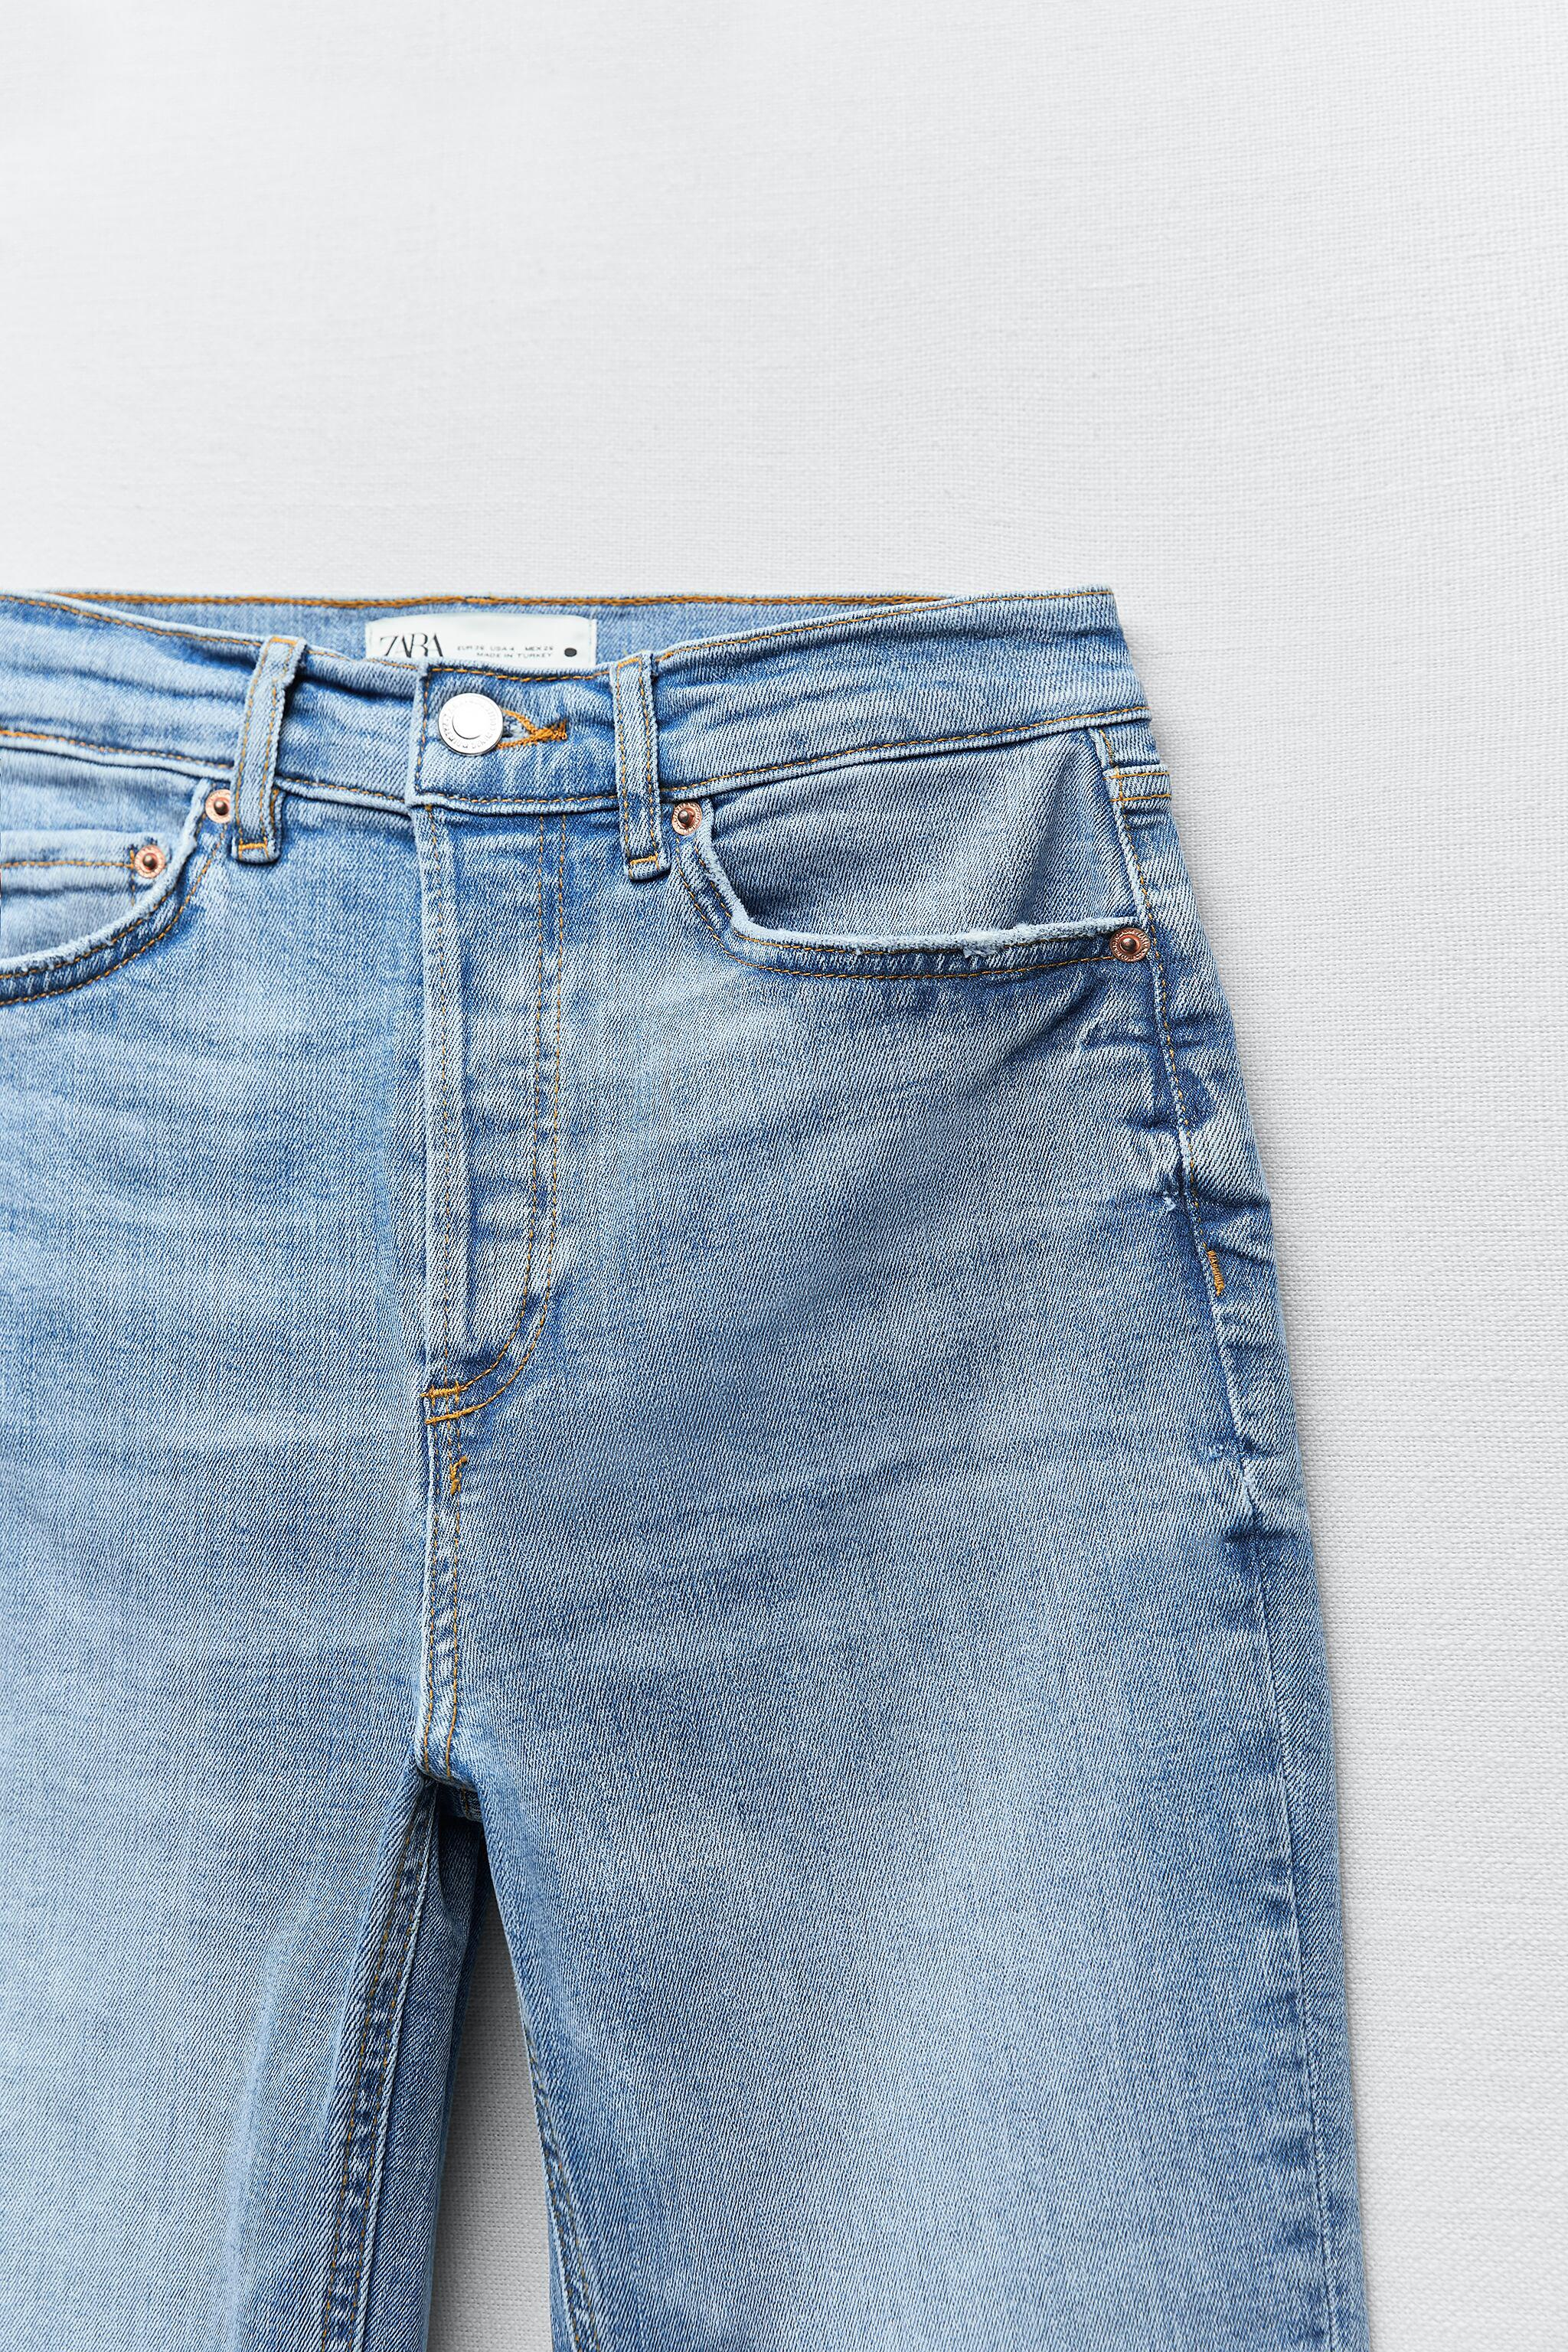 ZW THE DREED FLARE JEANS 8